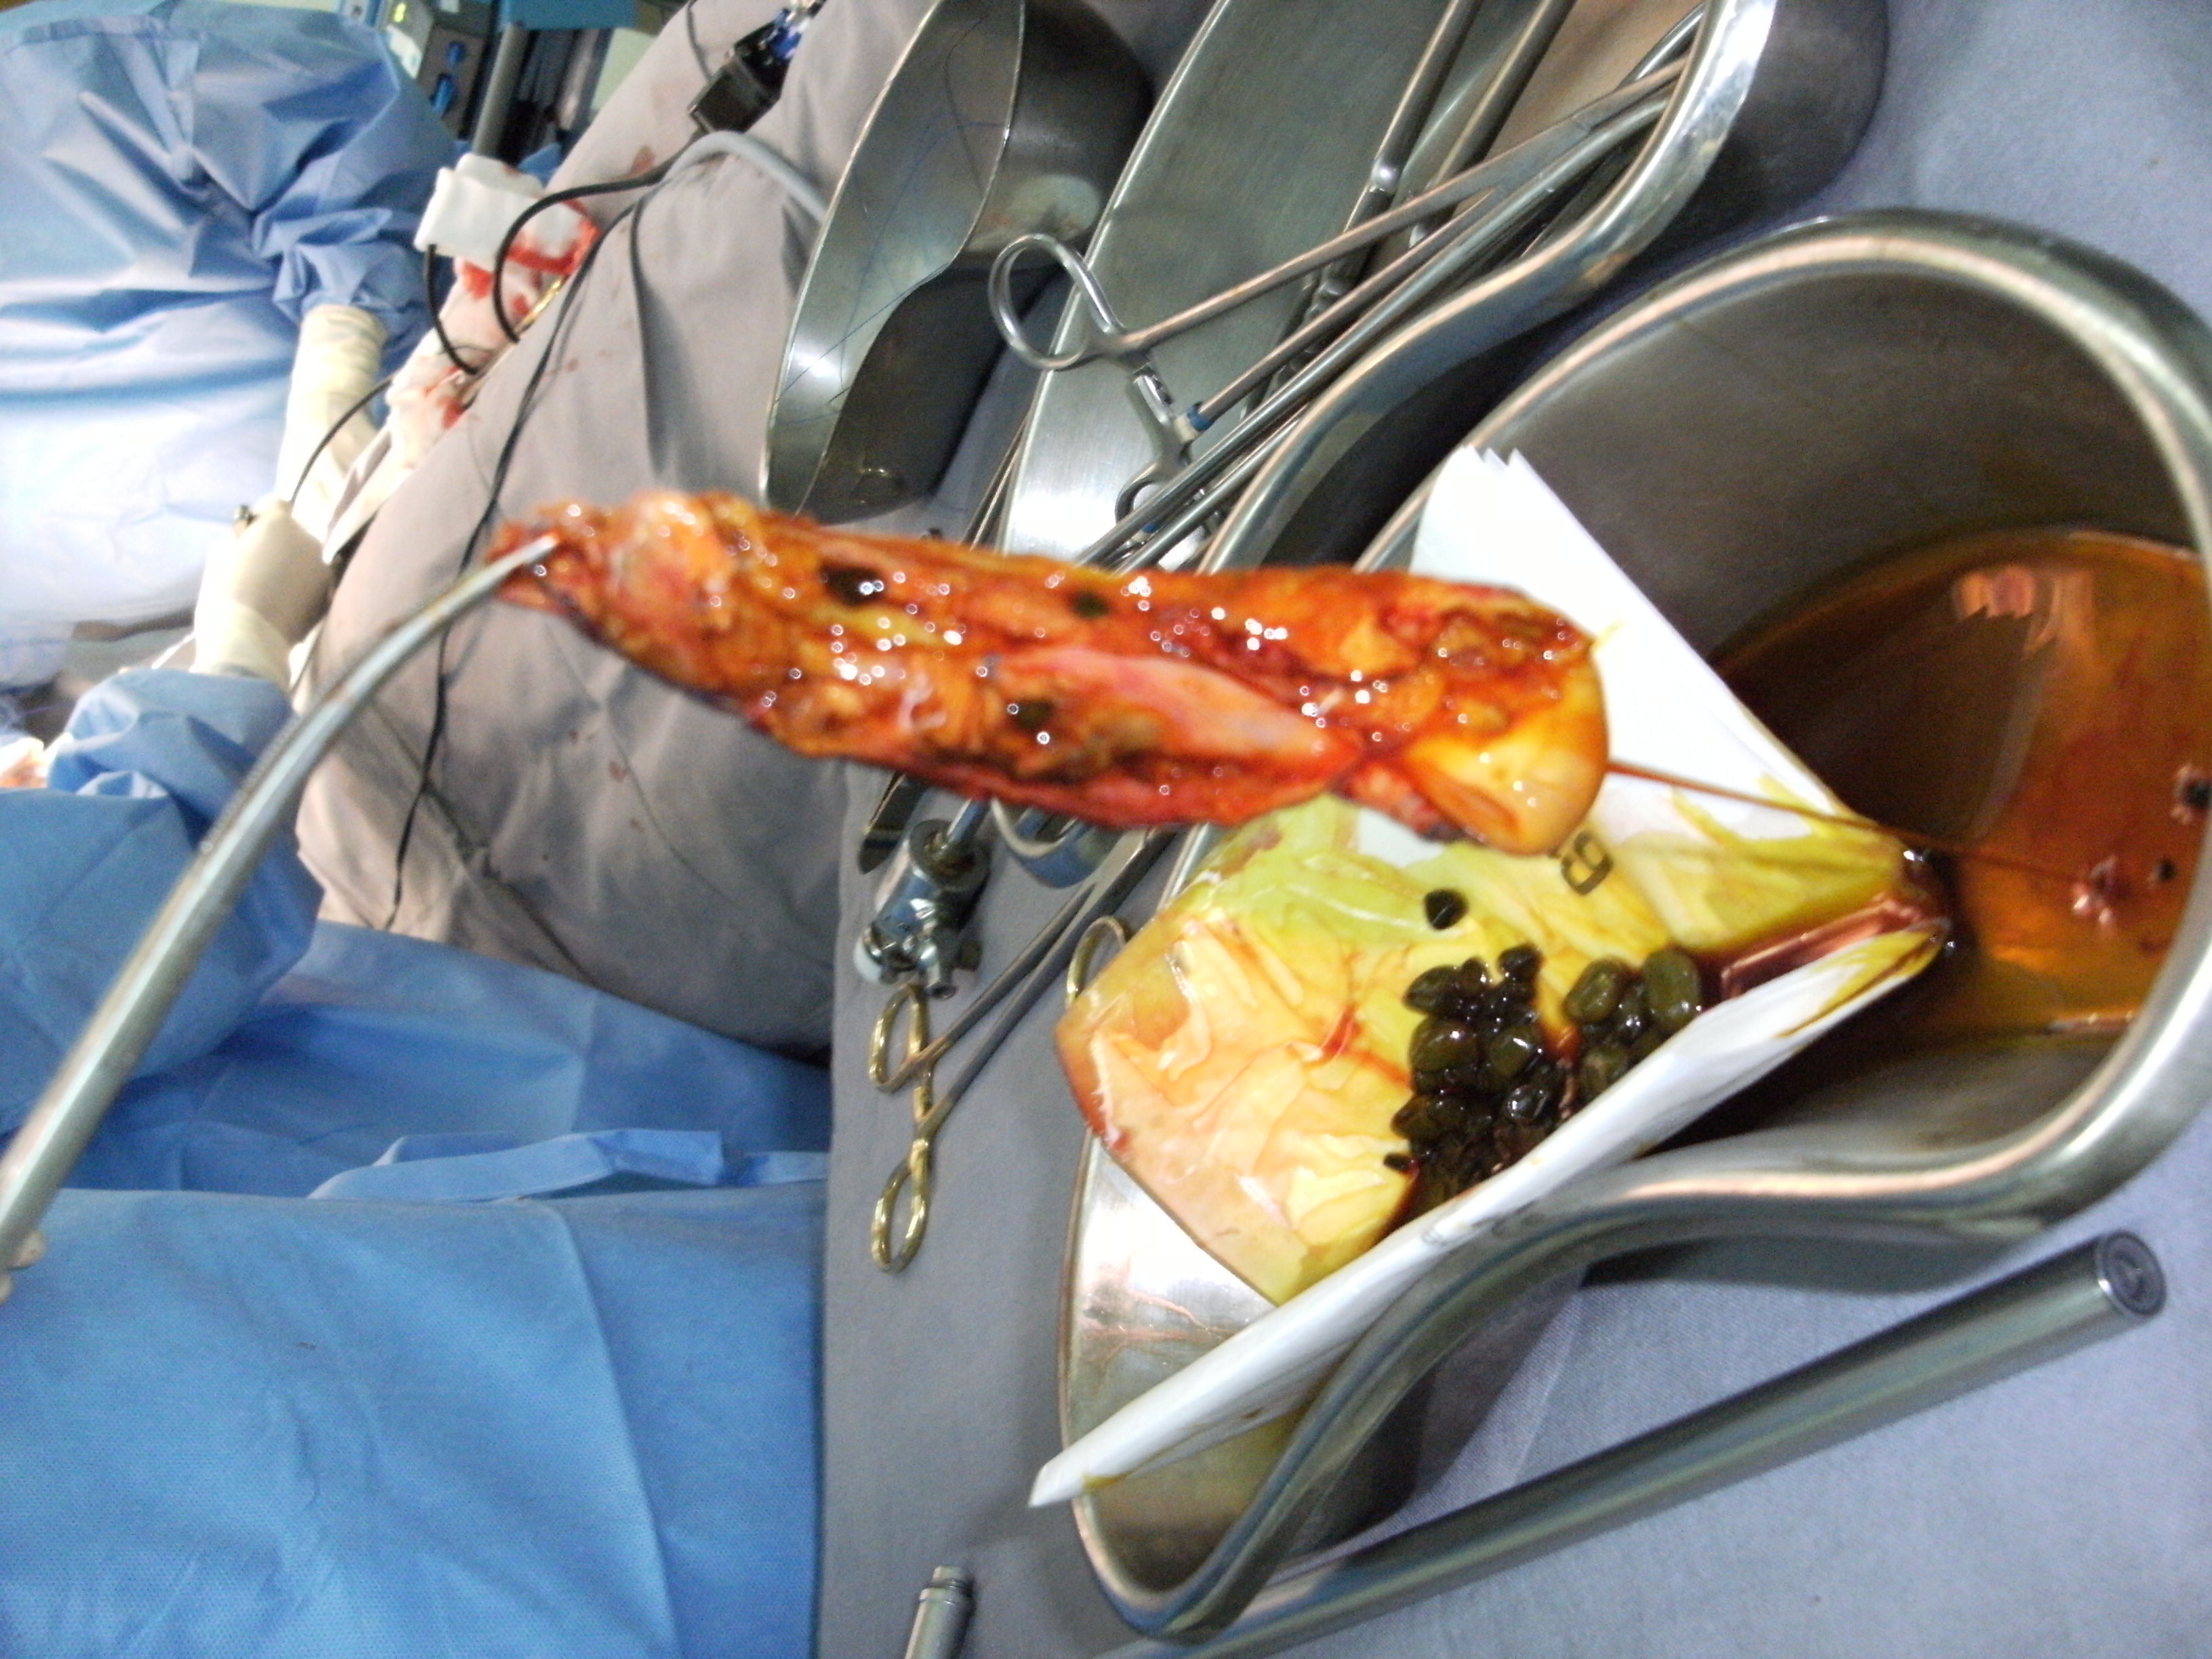 Gallbladder removed with stones